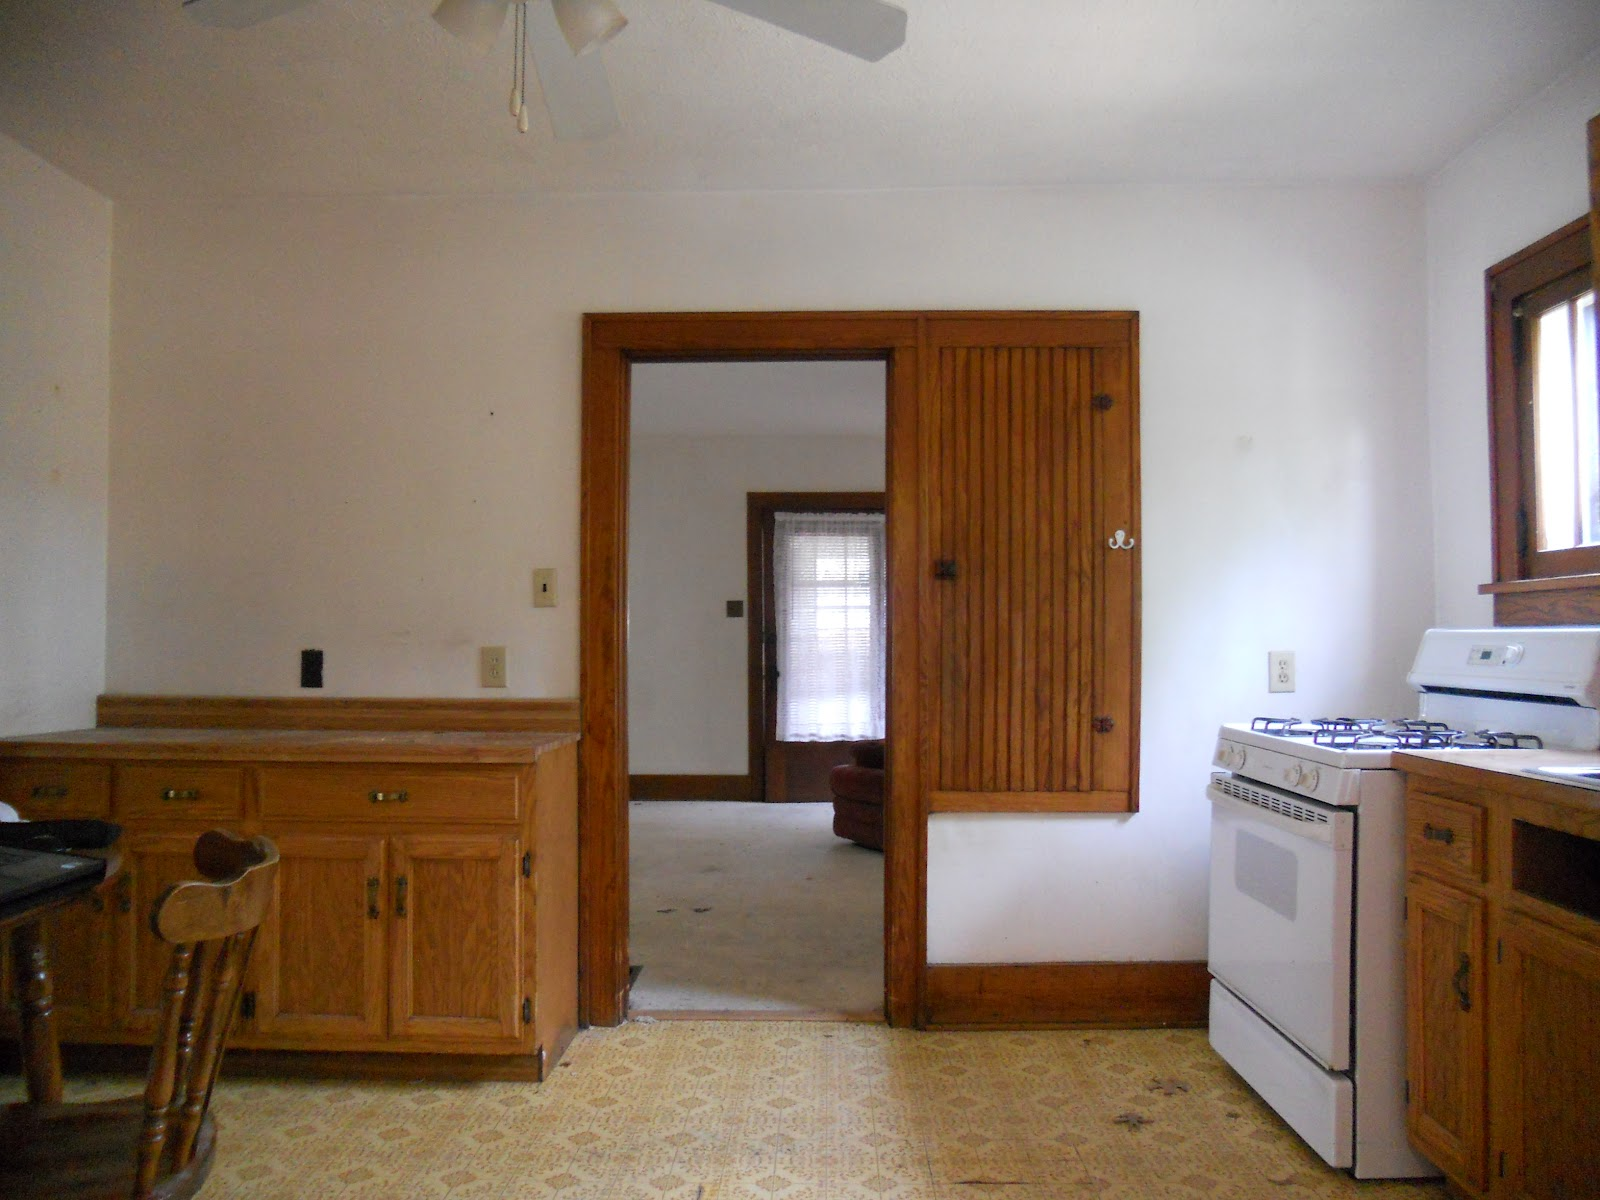 Kitchen Cabinet Auctions Near Me